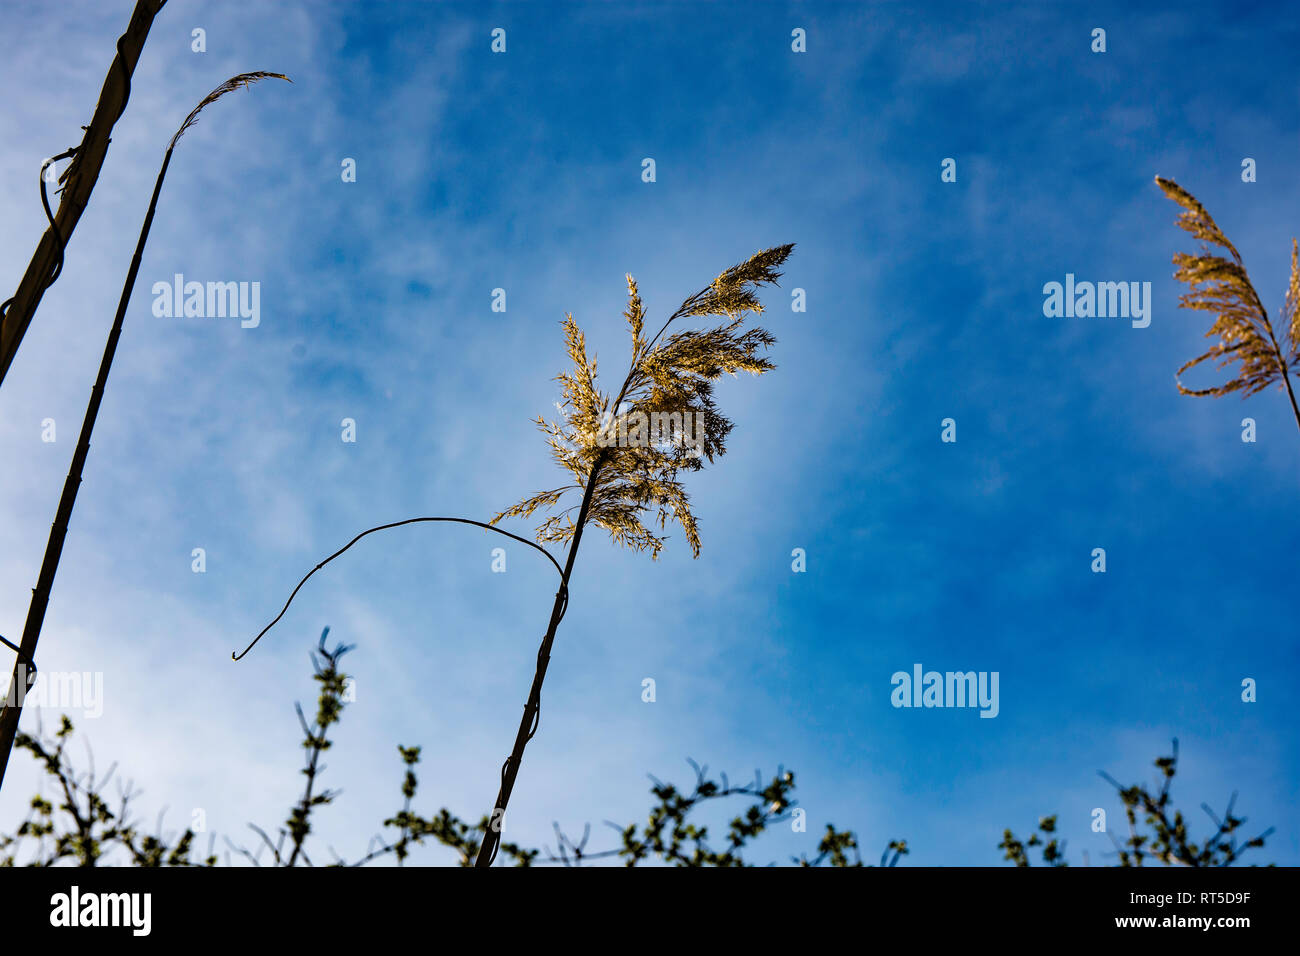 beautiful swamp grass, also known as Schoenoplectus, Bulrushes, pampas, on a blurred background - Stock Image